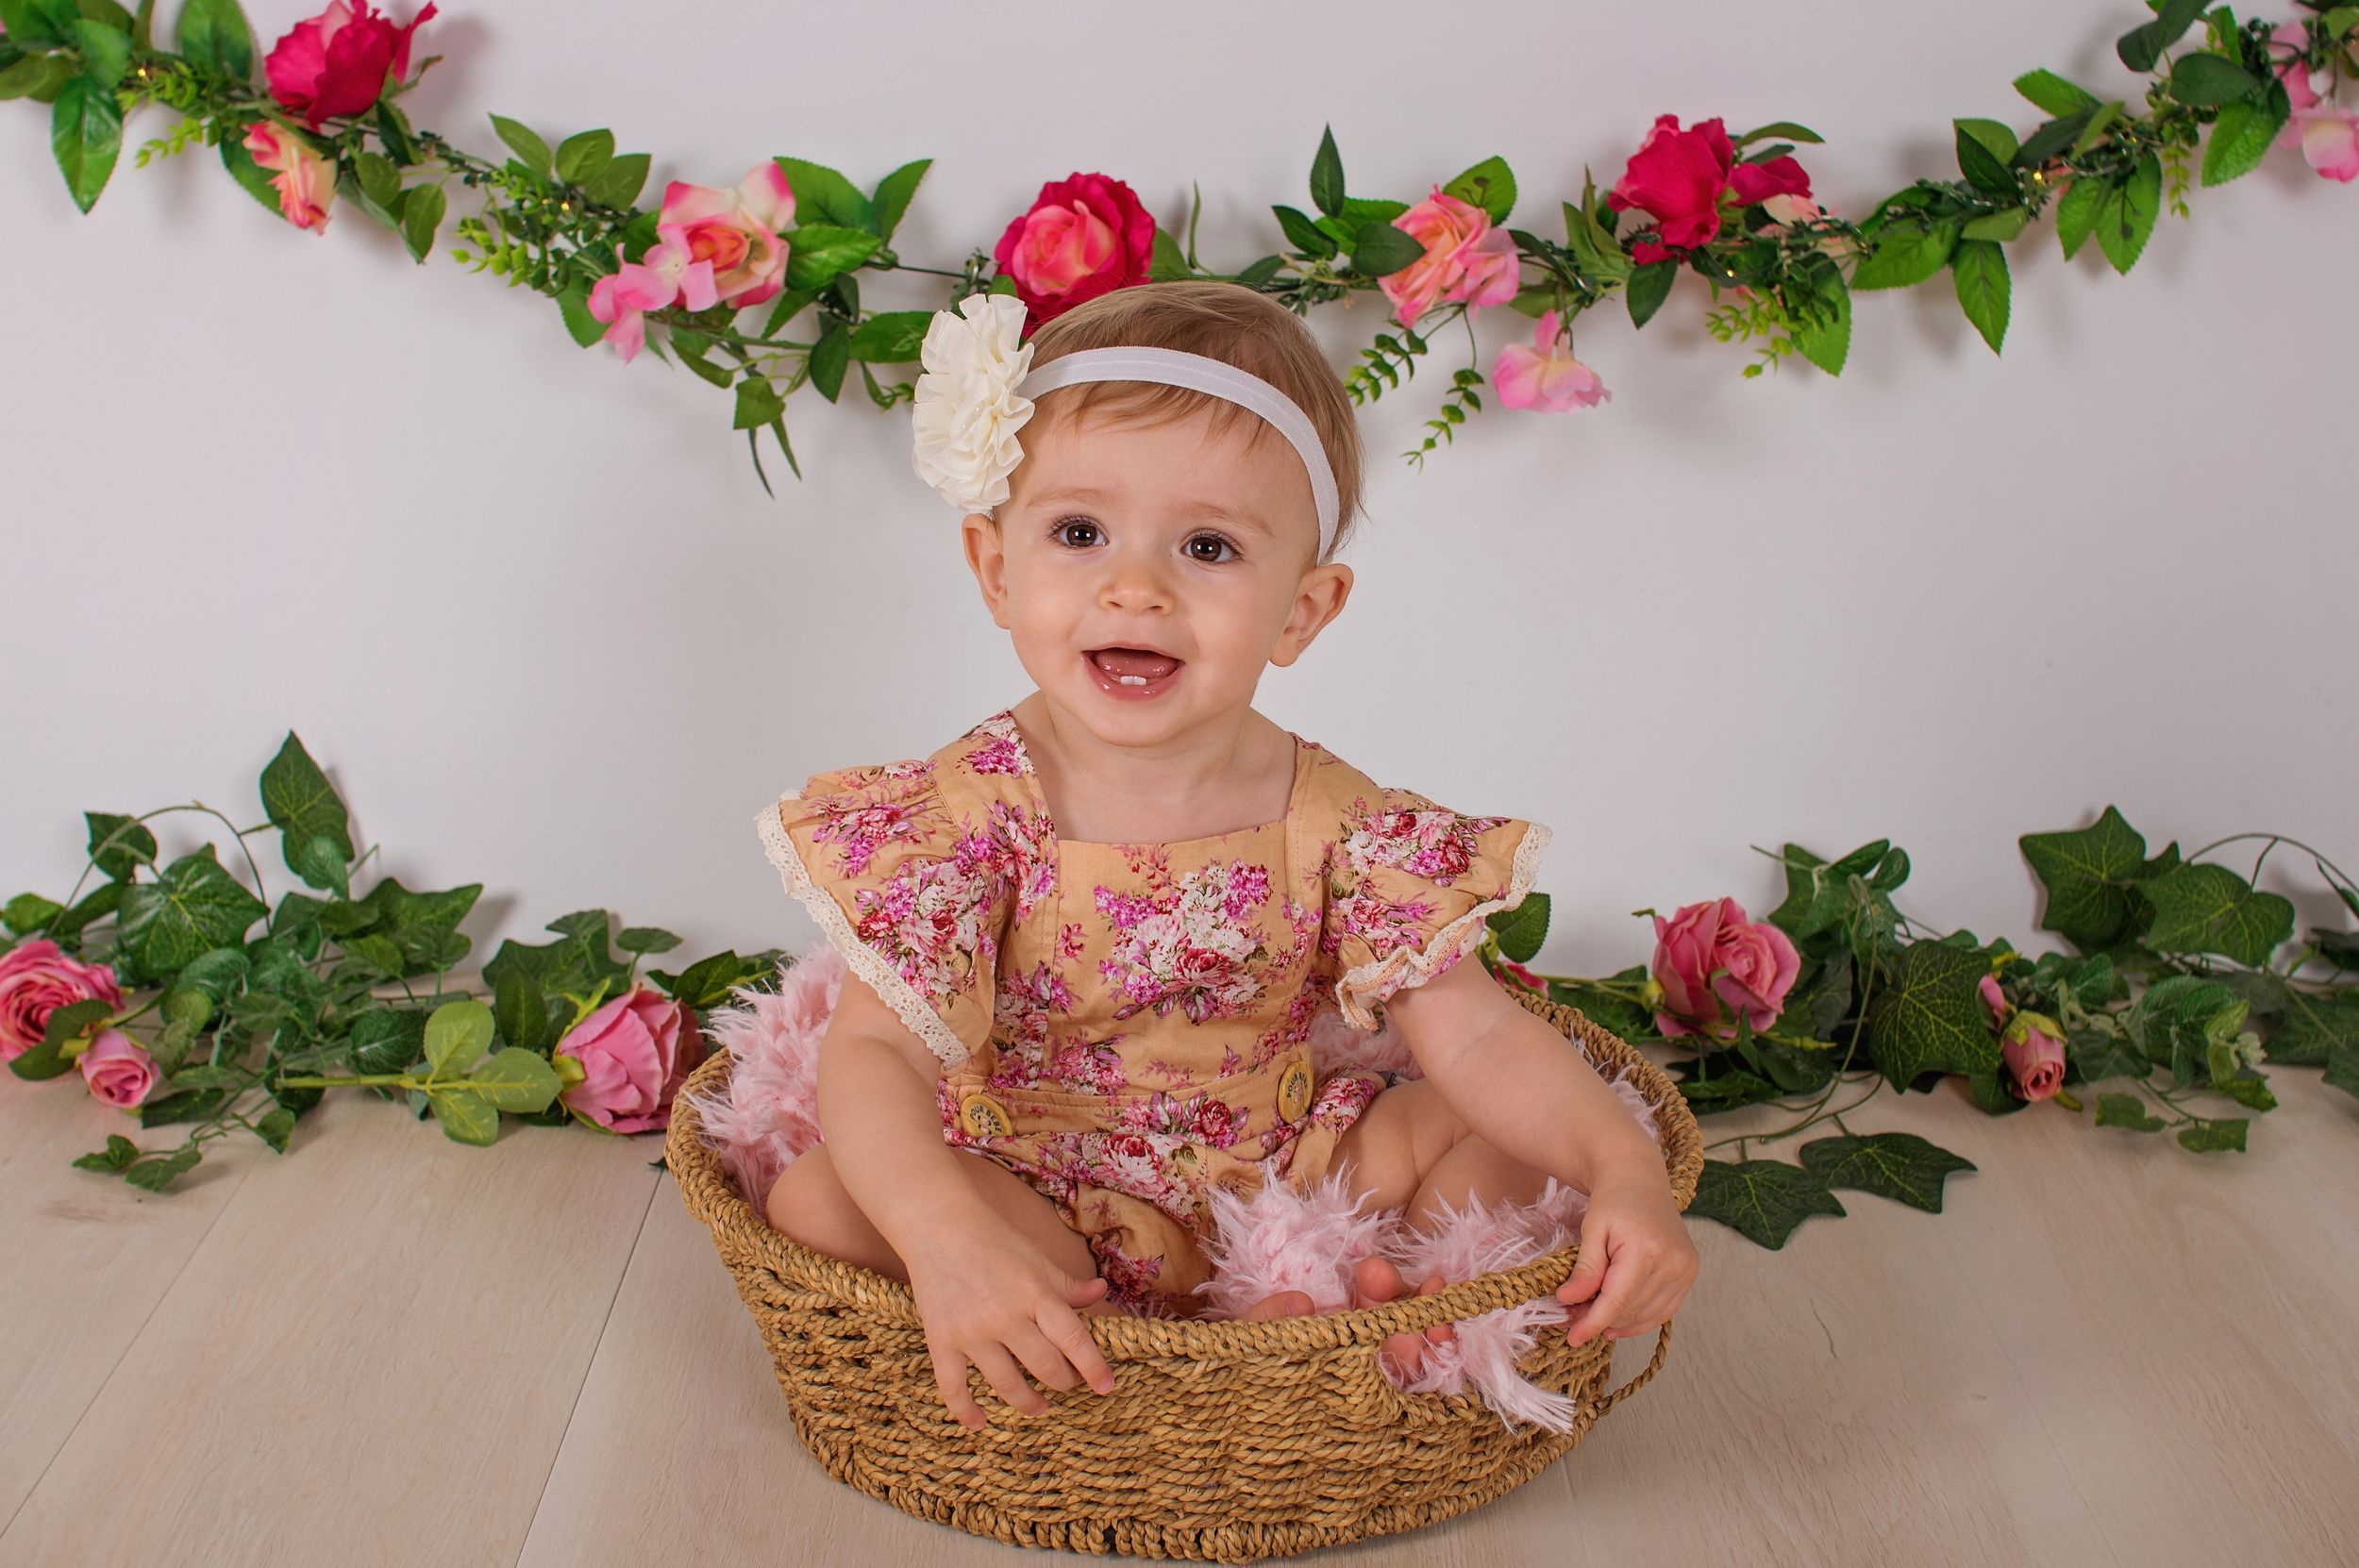 baby girl sitting in basket smiling surrounded by flowers